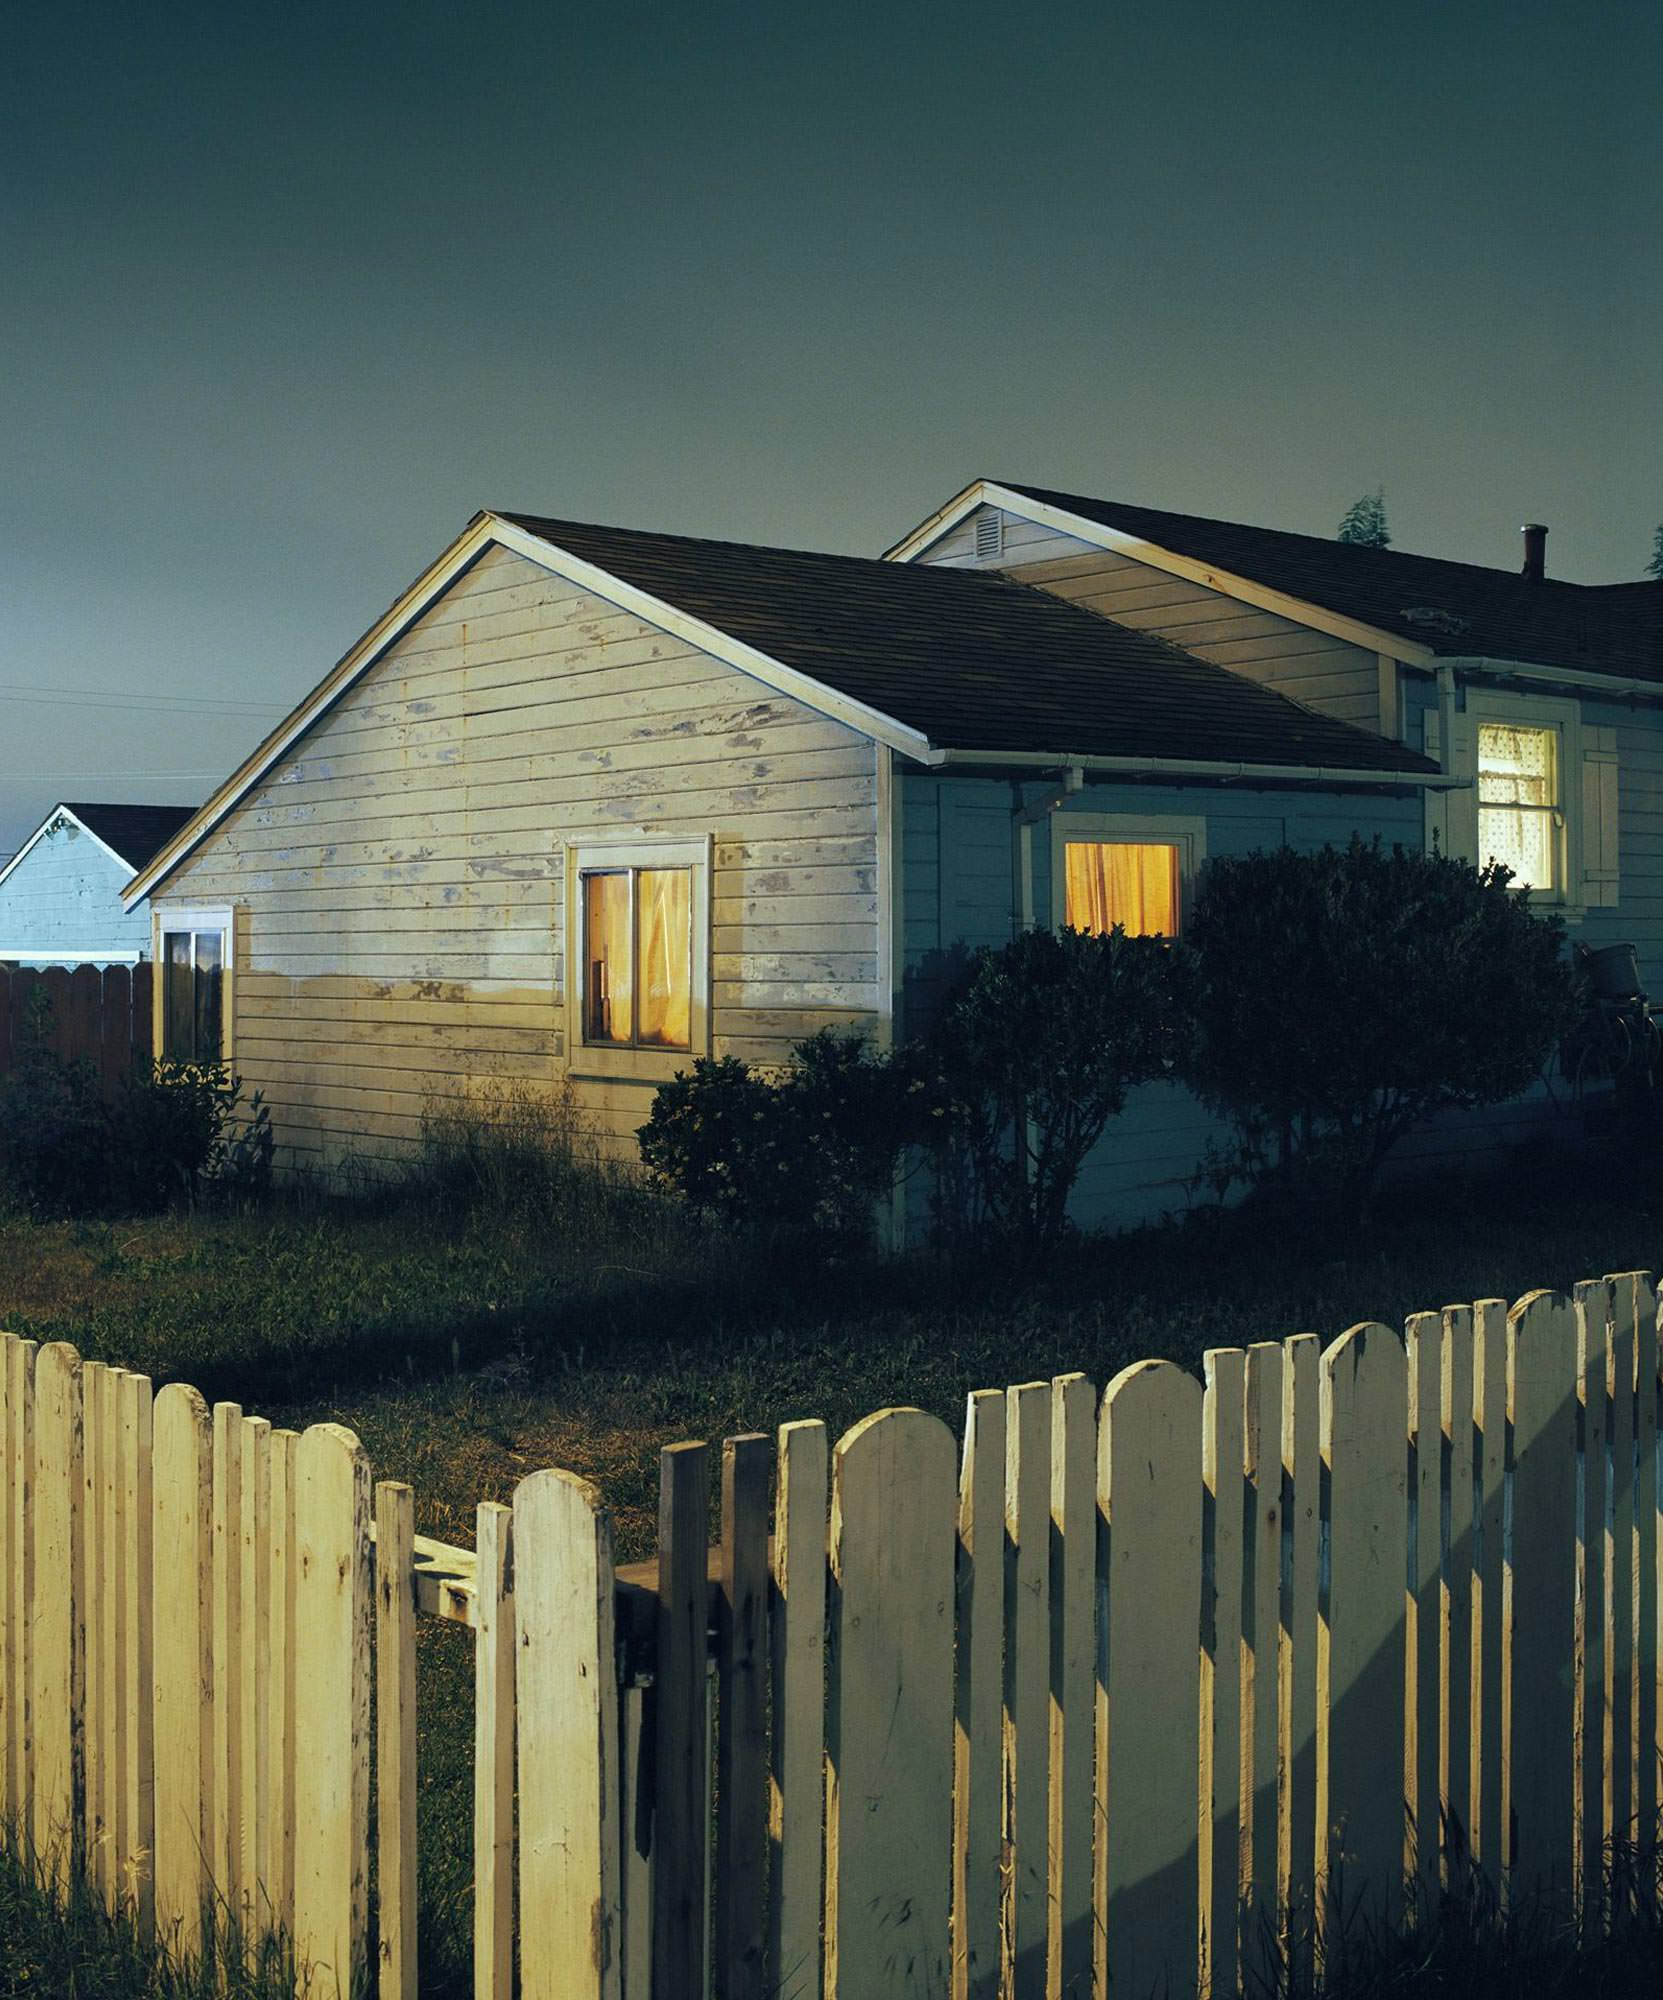 Todd Hido Photographie #2690, 2000